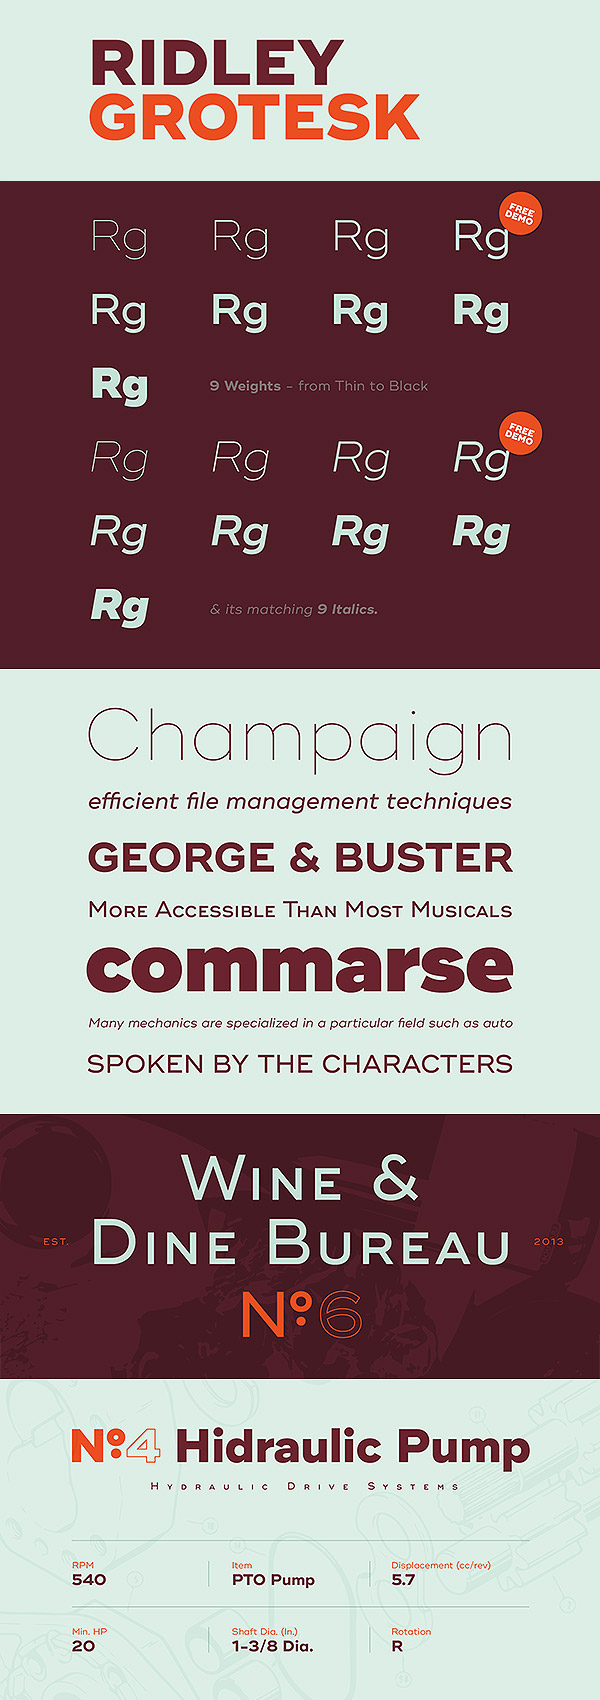 Free Font - Ridley Grotesk Typface